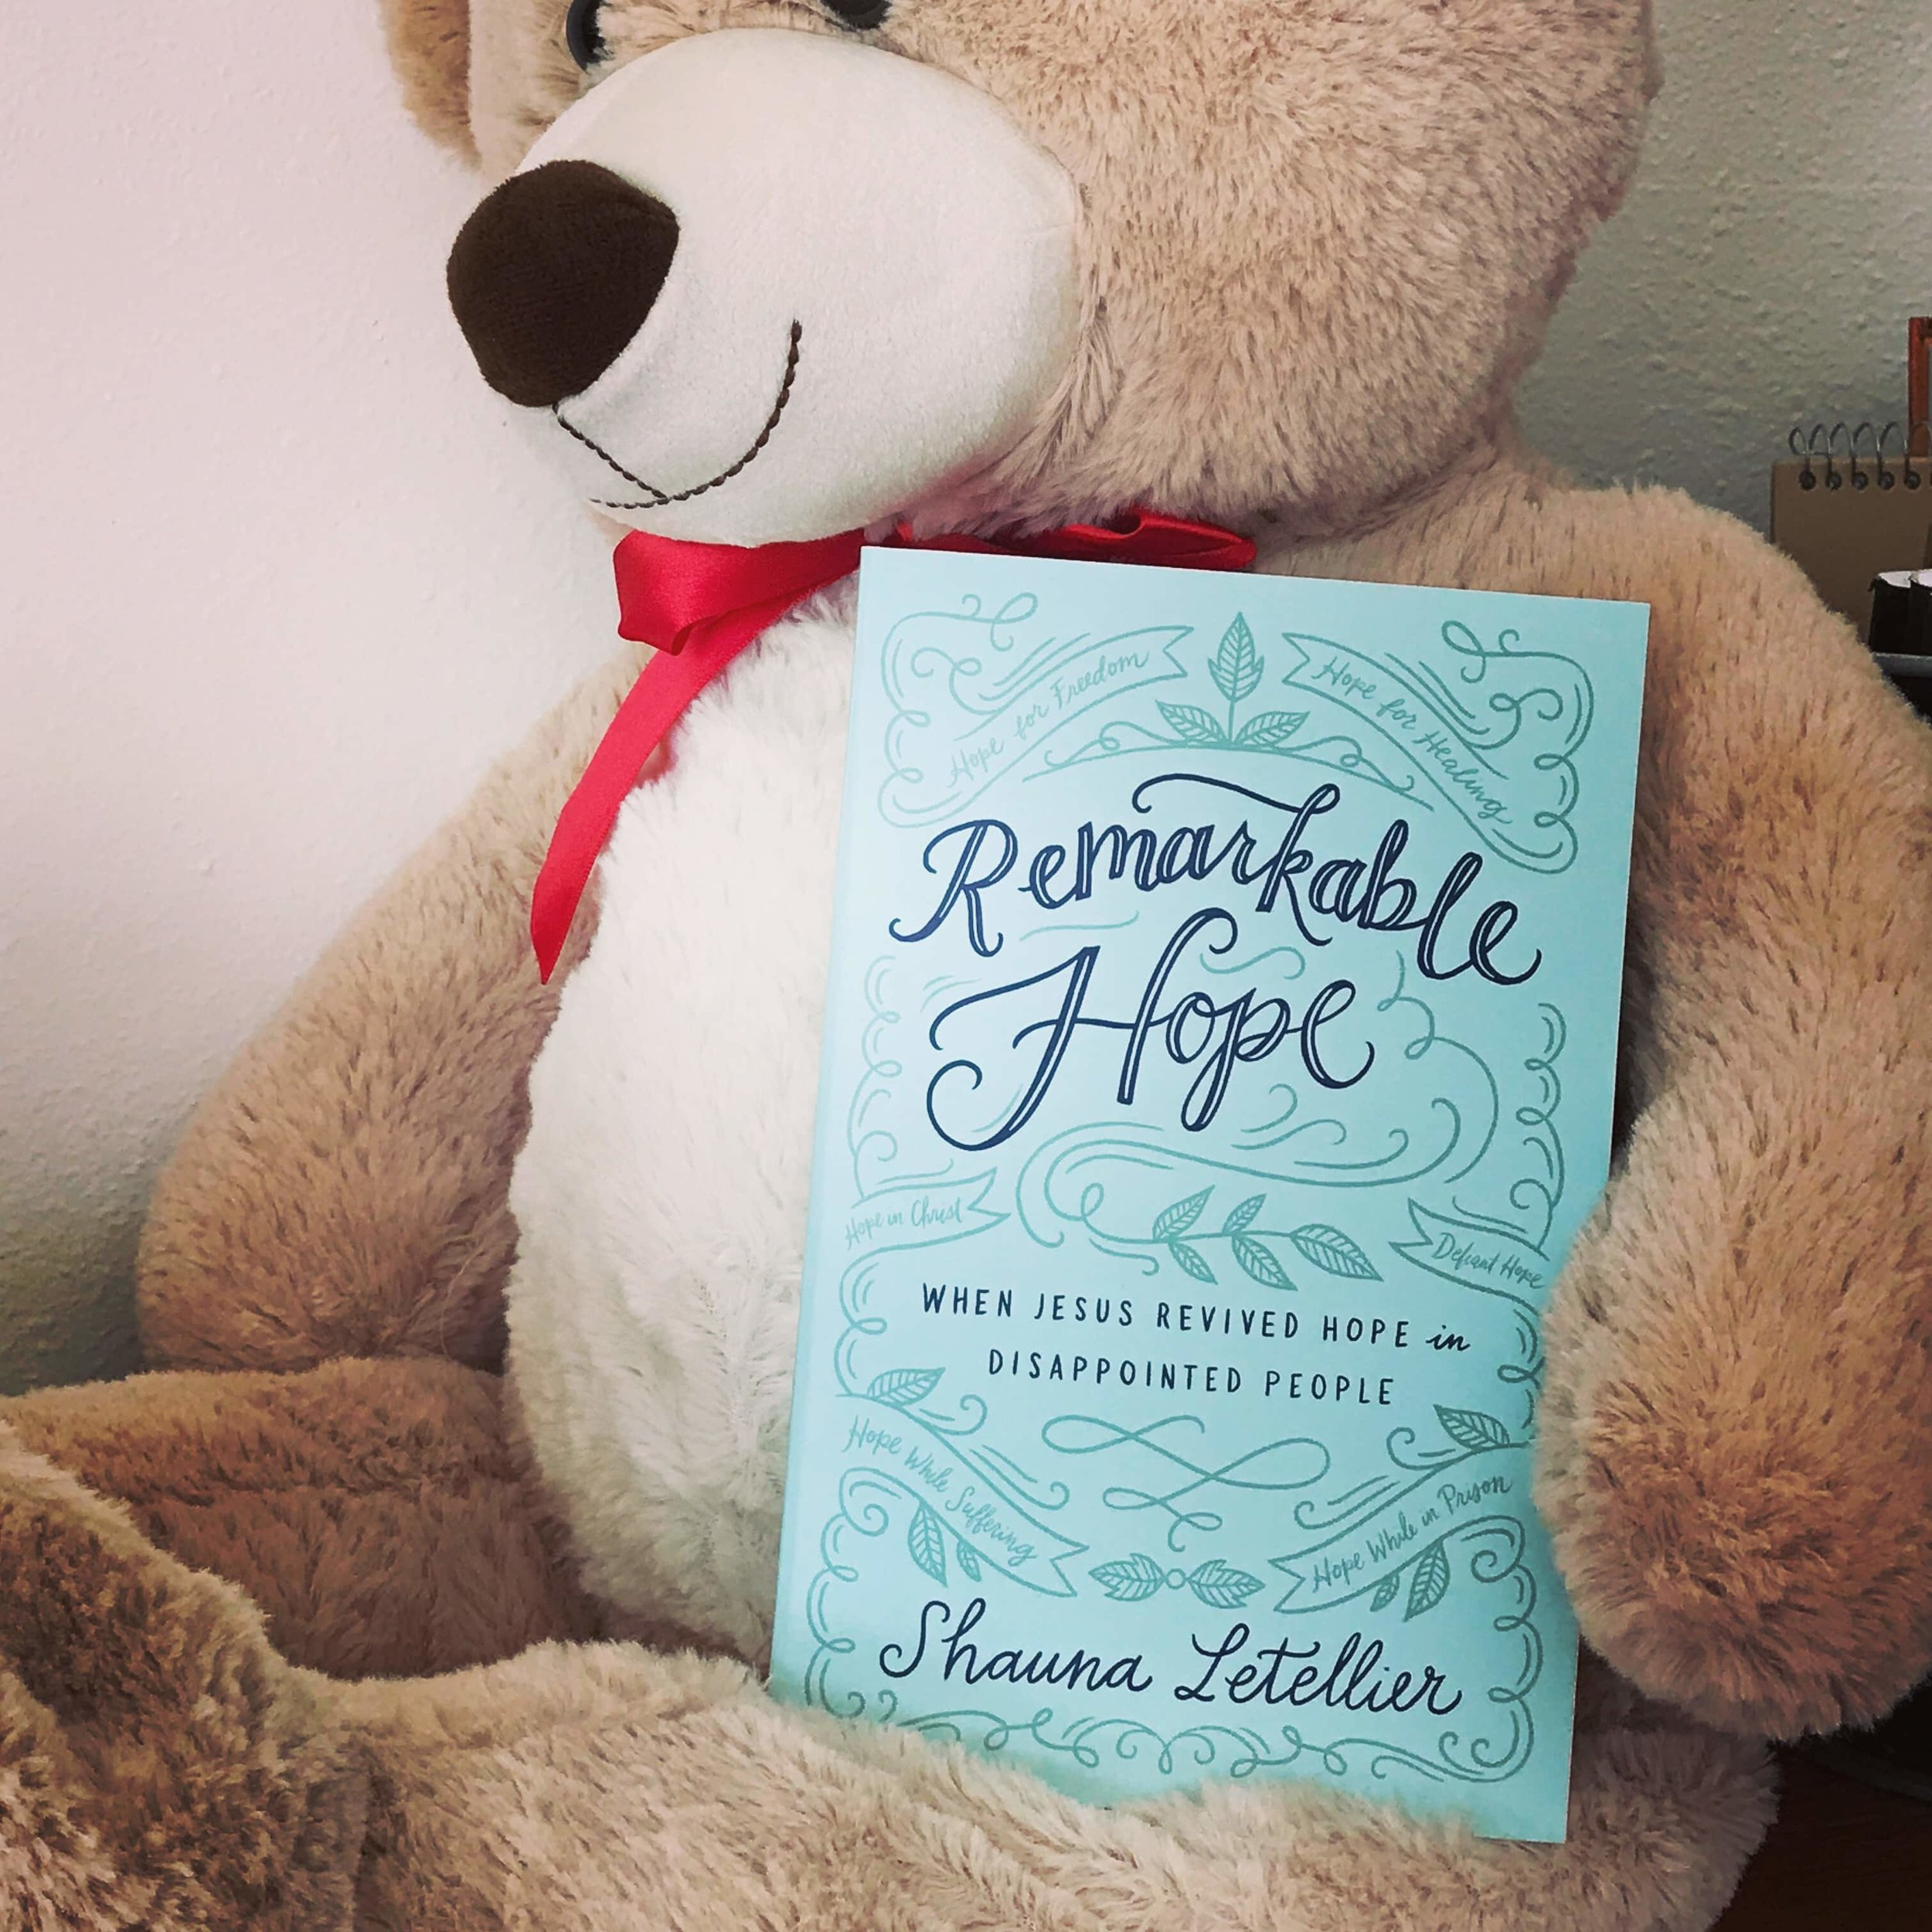 Remarkable Hope by Shauna Letellier  Photo by Patricia Tiffany Morris  Click on the photo above to go to Amazon